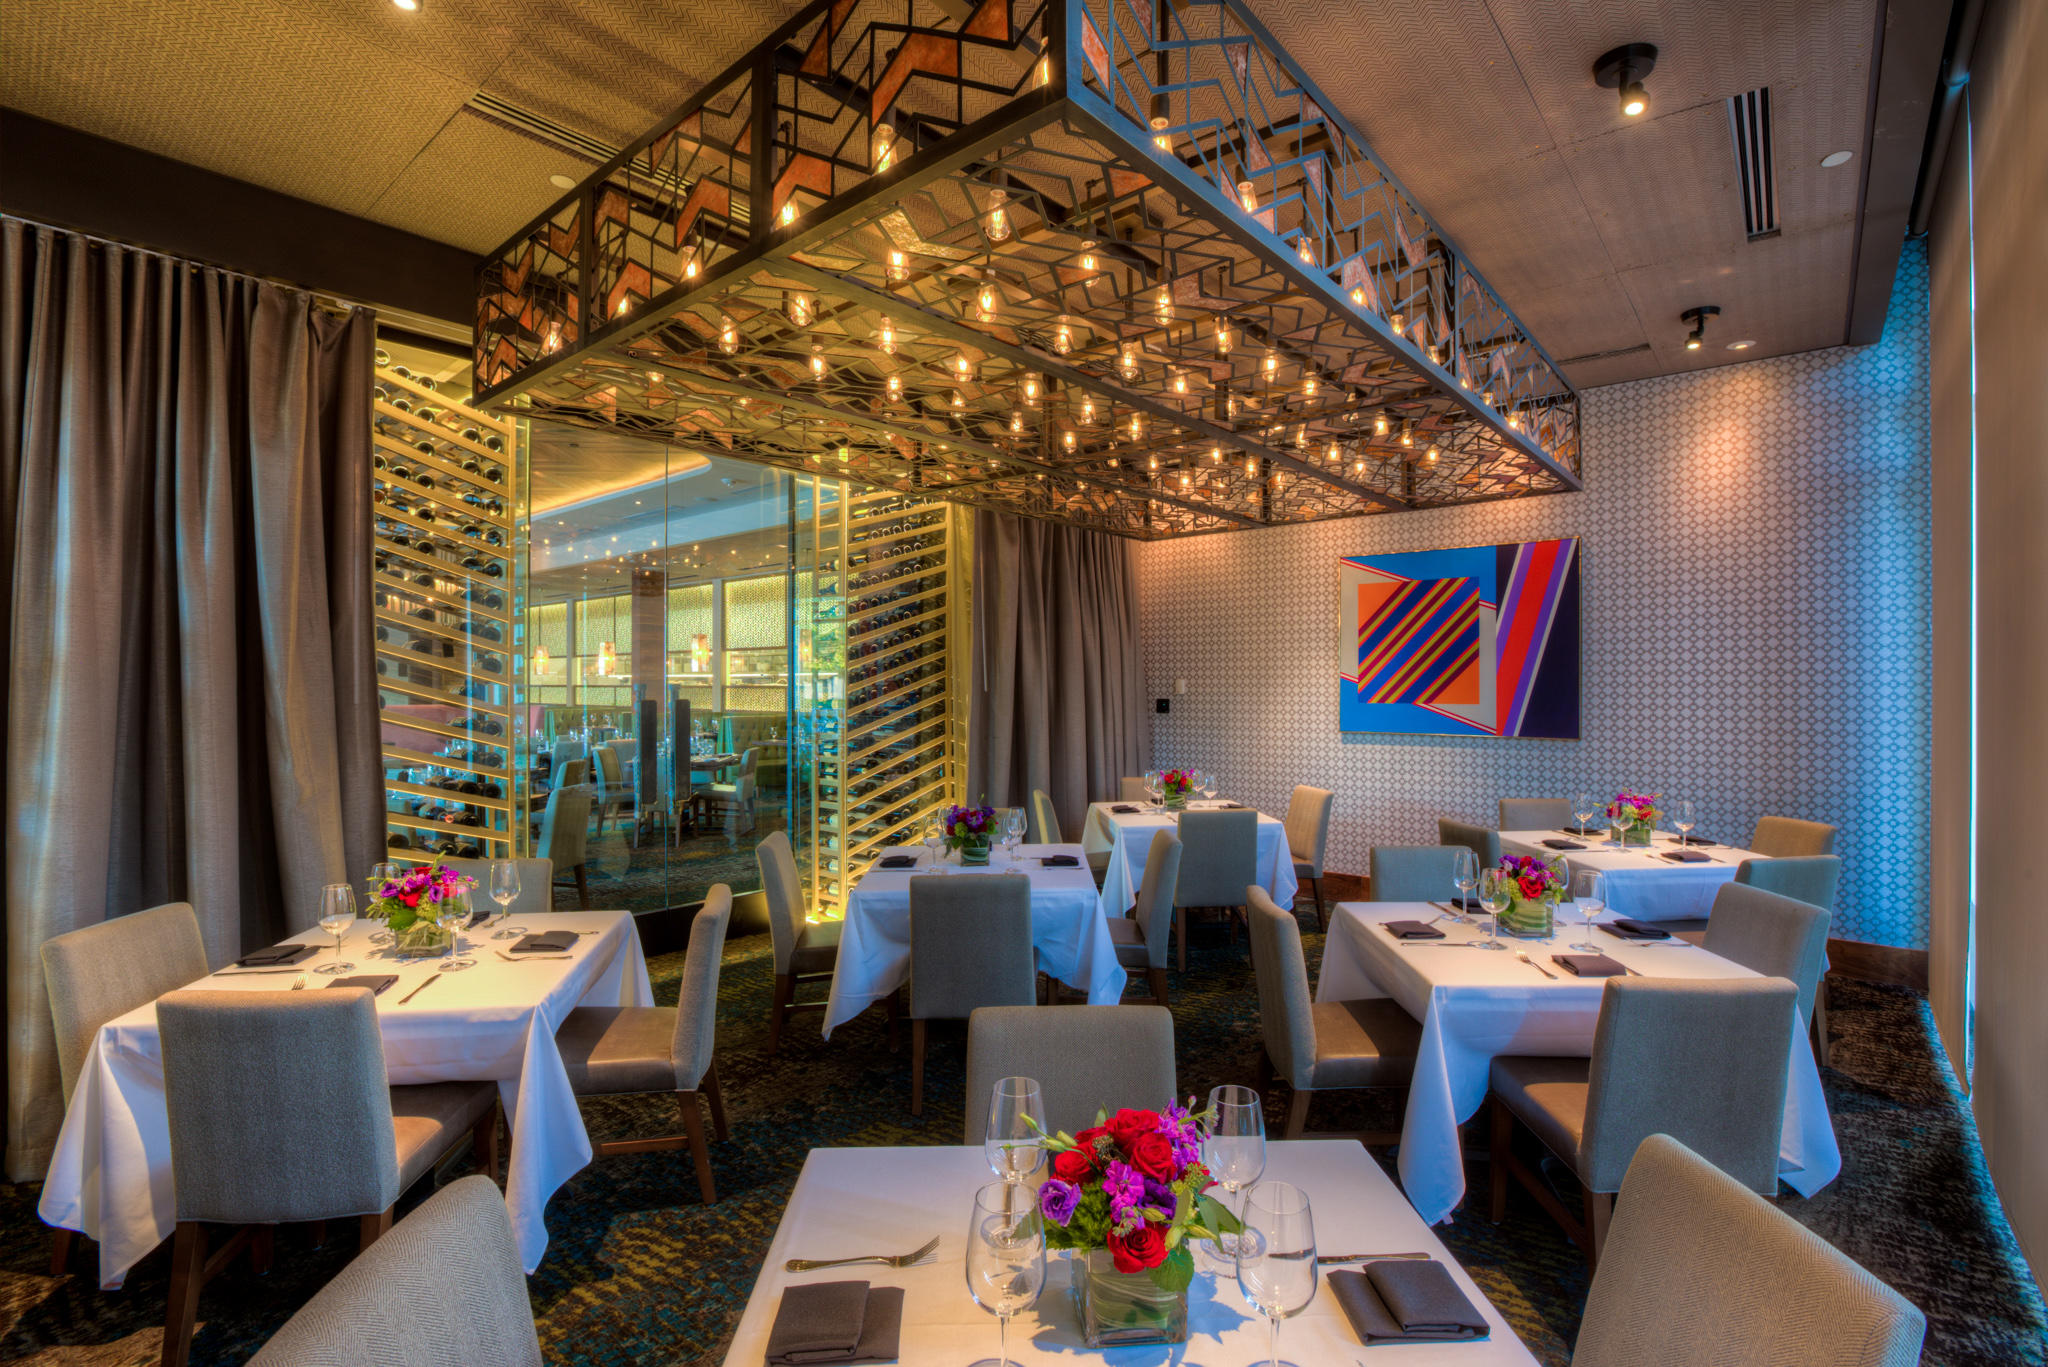 Del Frisco's Double Eagle Steakhouse Orlando THE EXECUTIVE private dining room